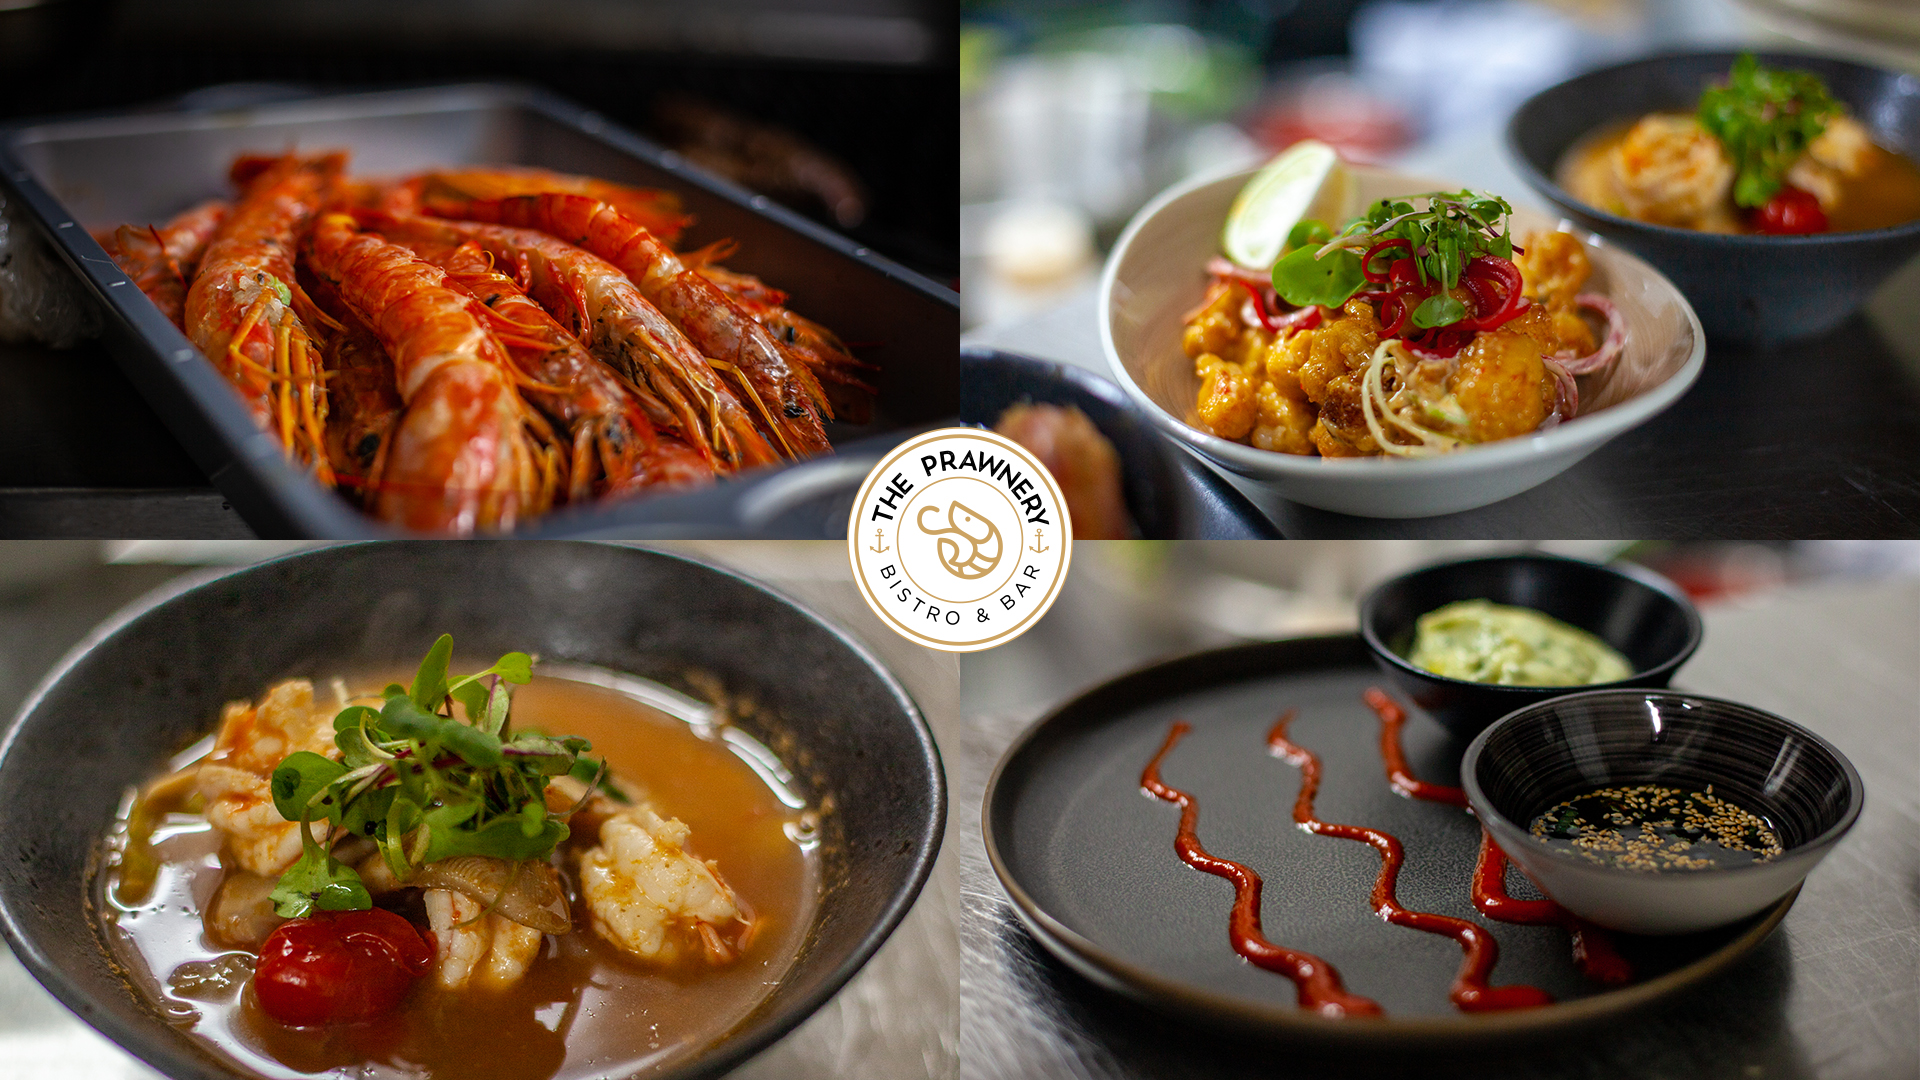 A selection of delicious prawn dishes available at The Prawnery.